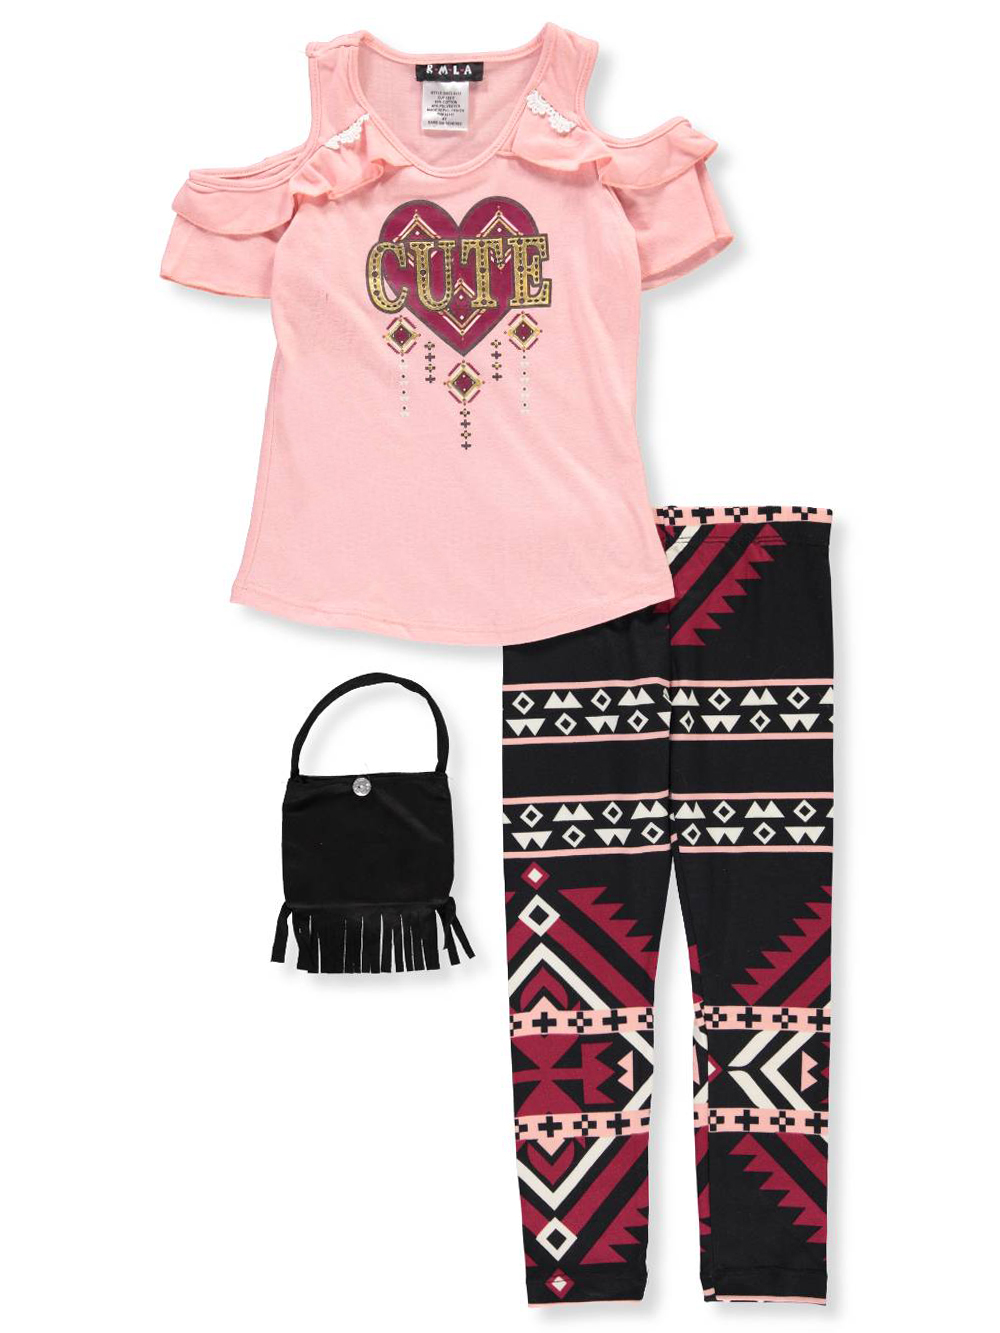 RMLA Girls Lace and Stripes 2-Piece Shorts Set Outfit